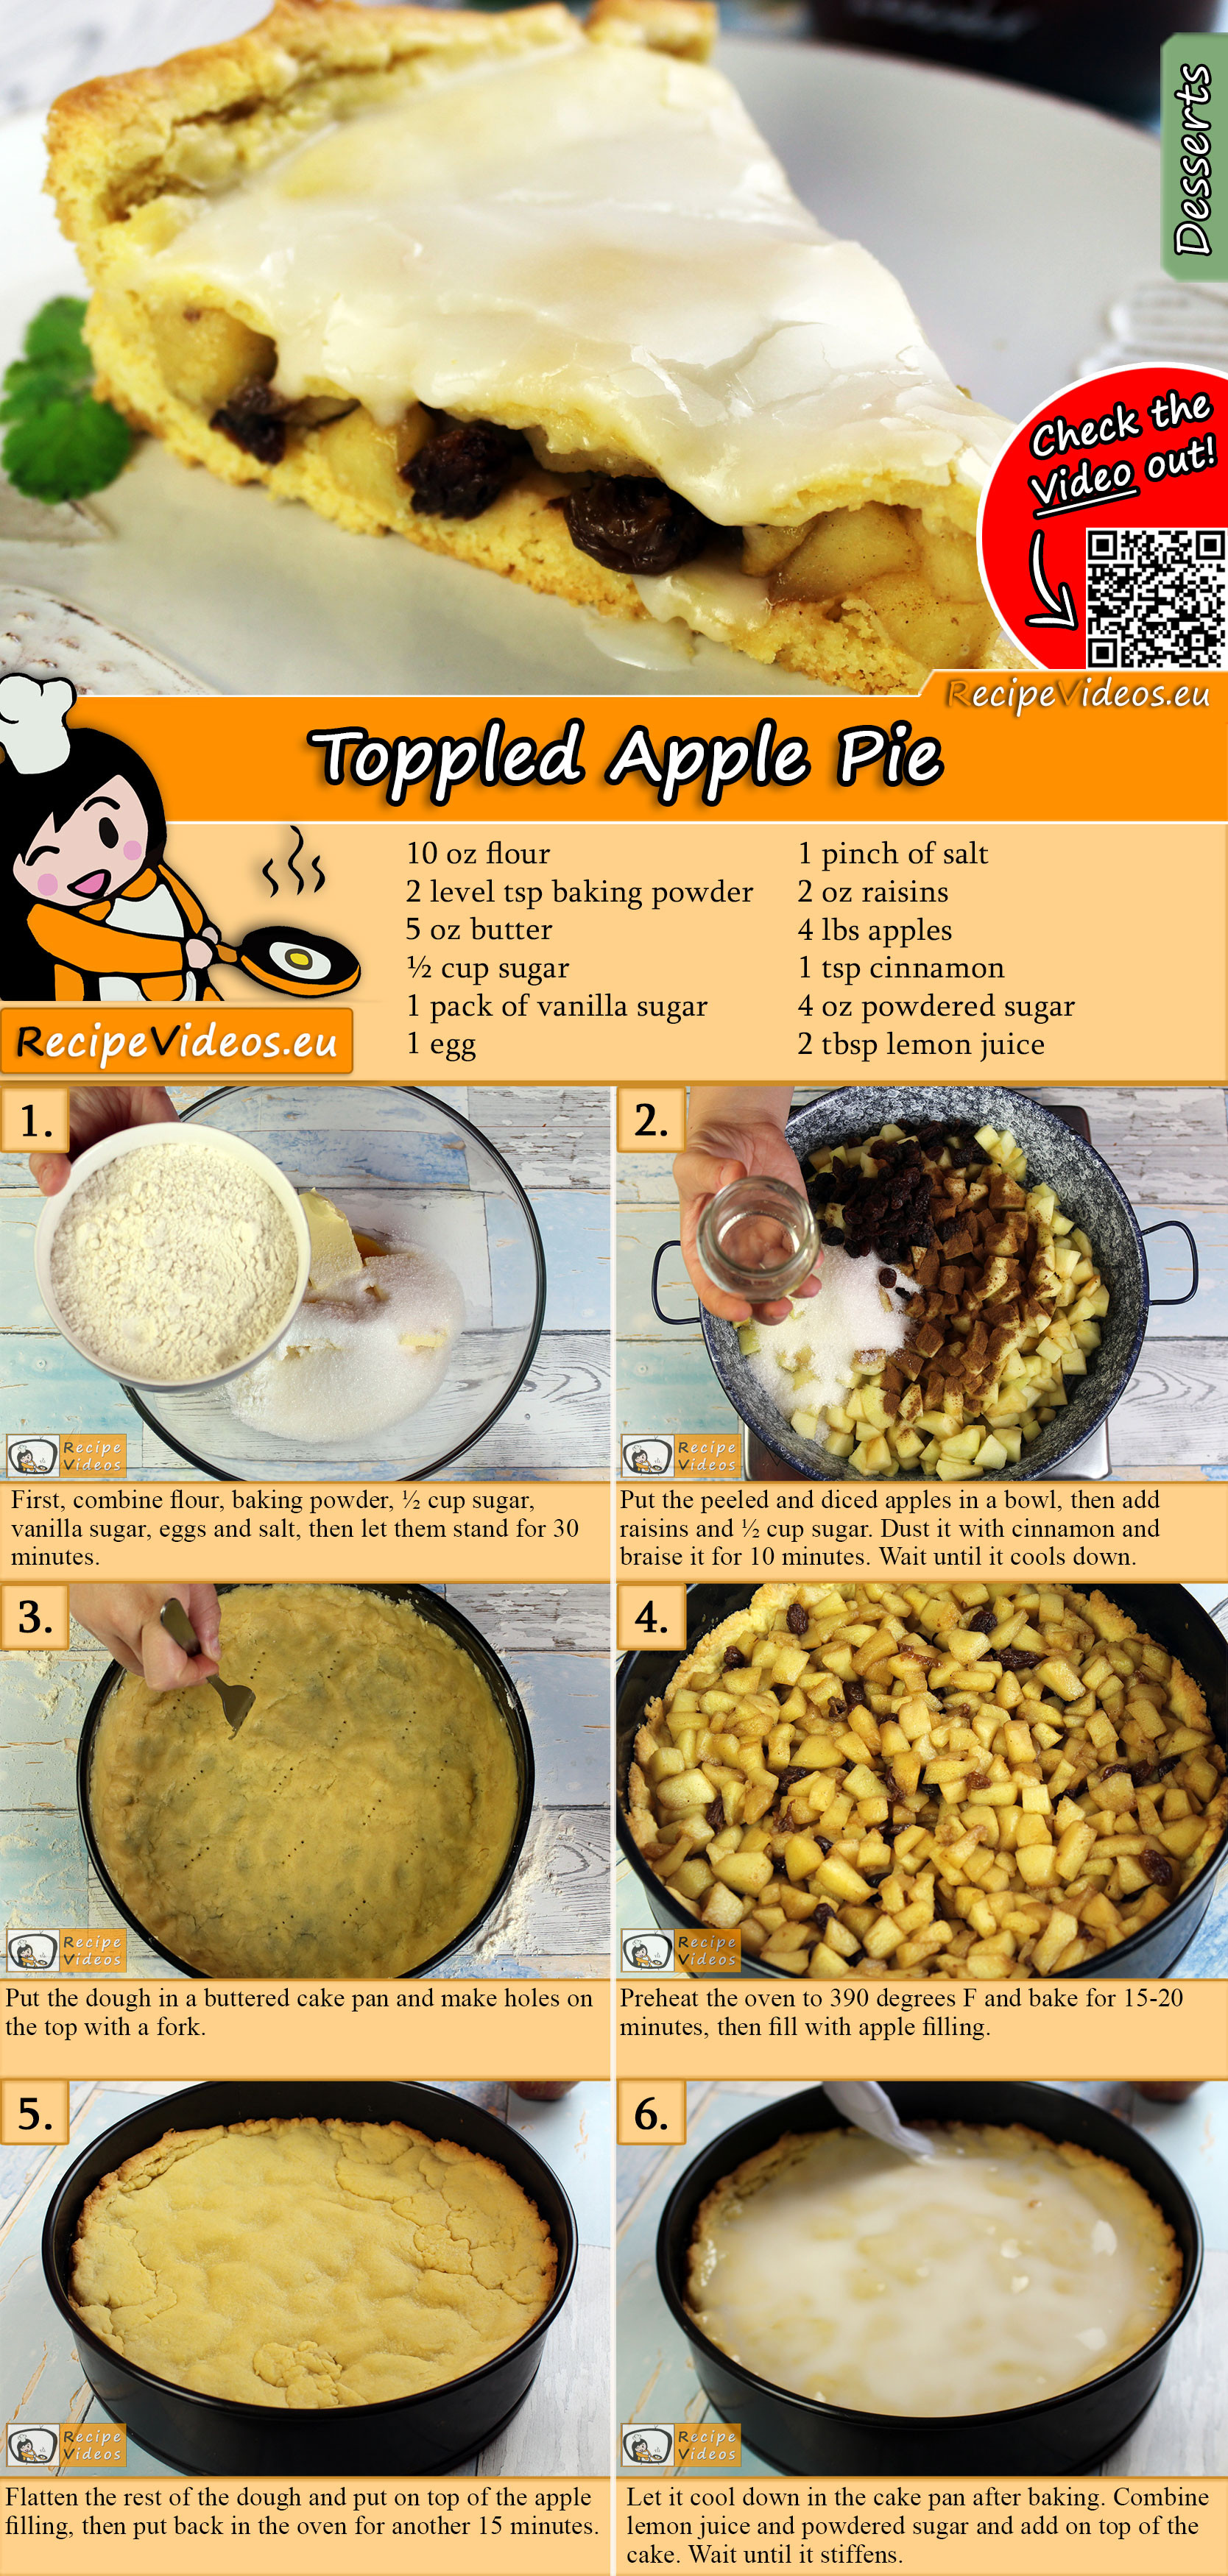 Topped Apple Pie recipe with video